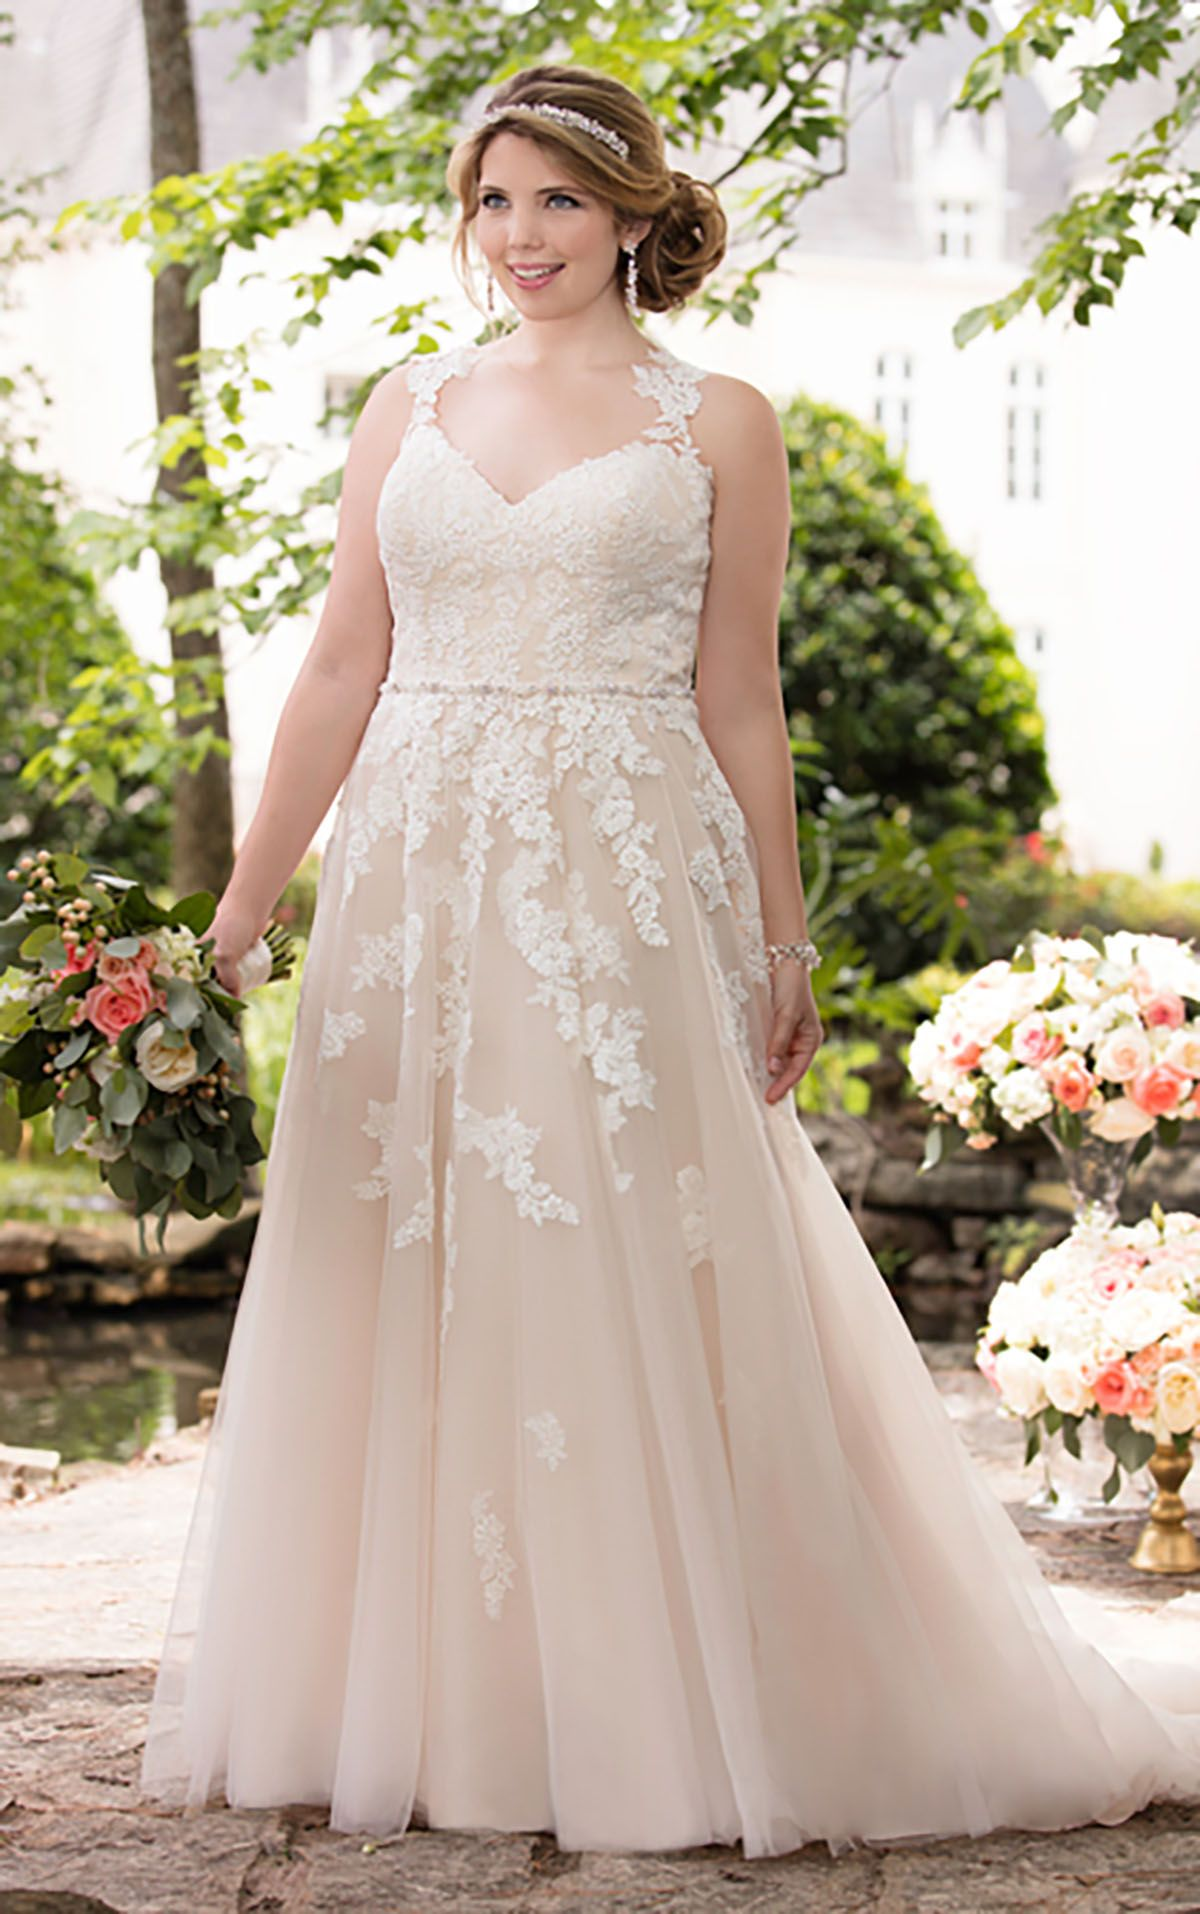 Lace illusion back wedding dress stella york bodice and romantic